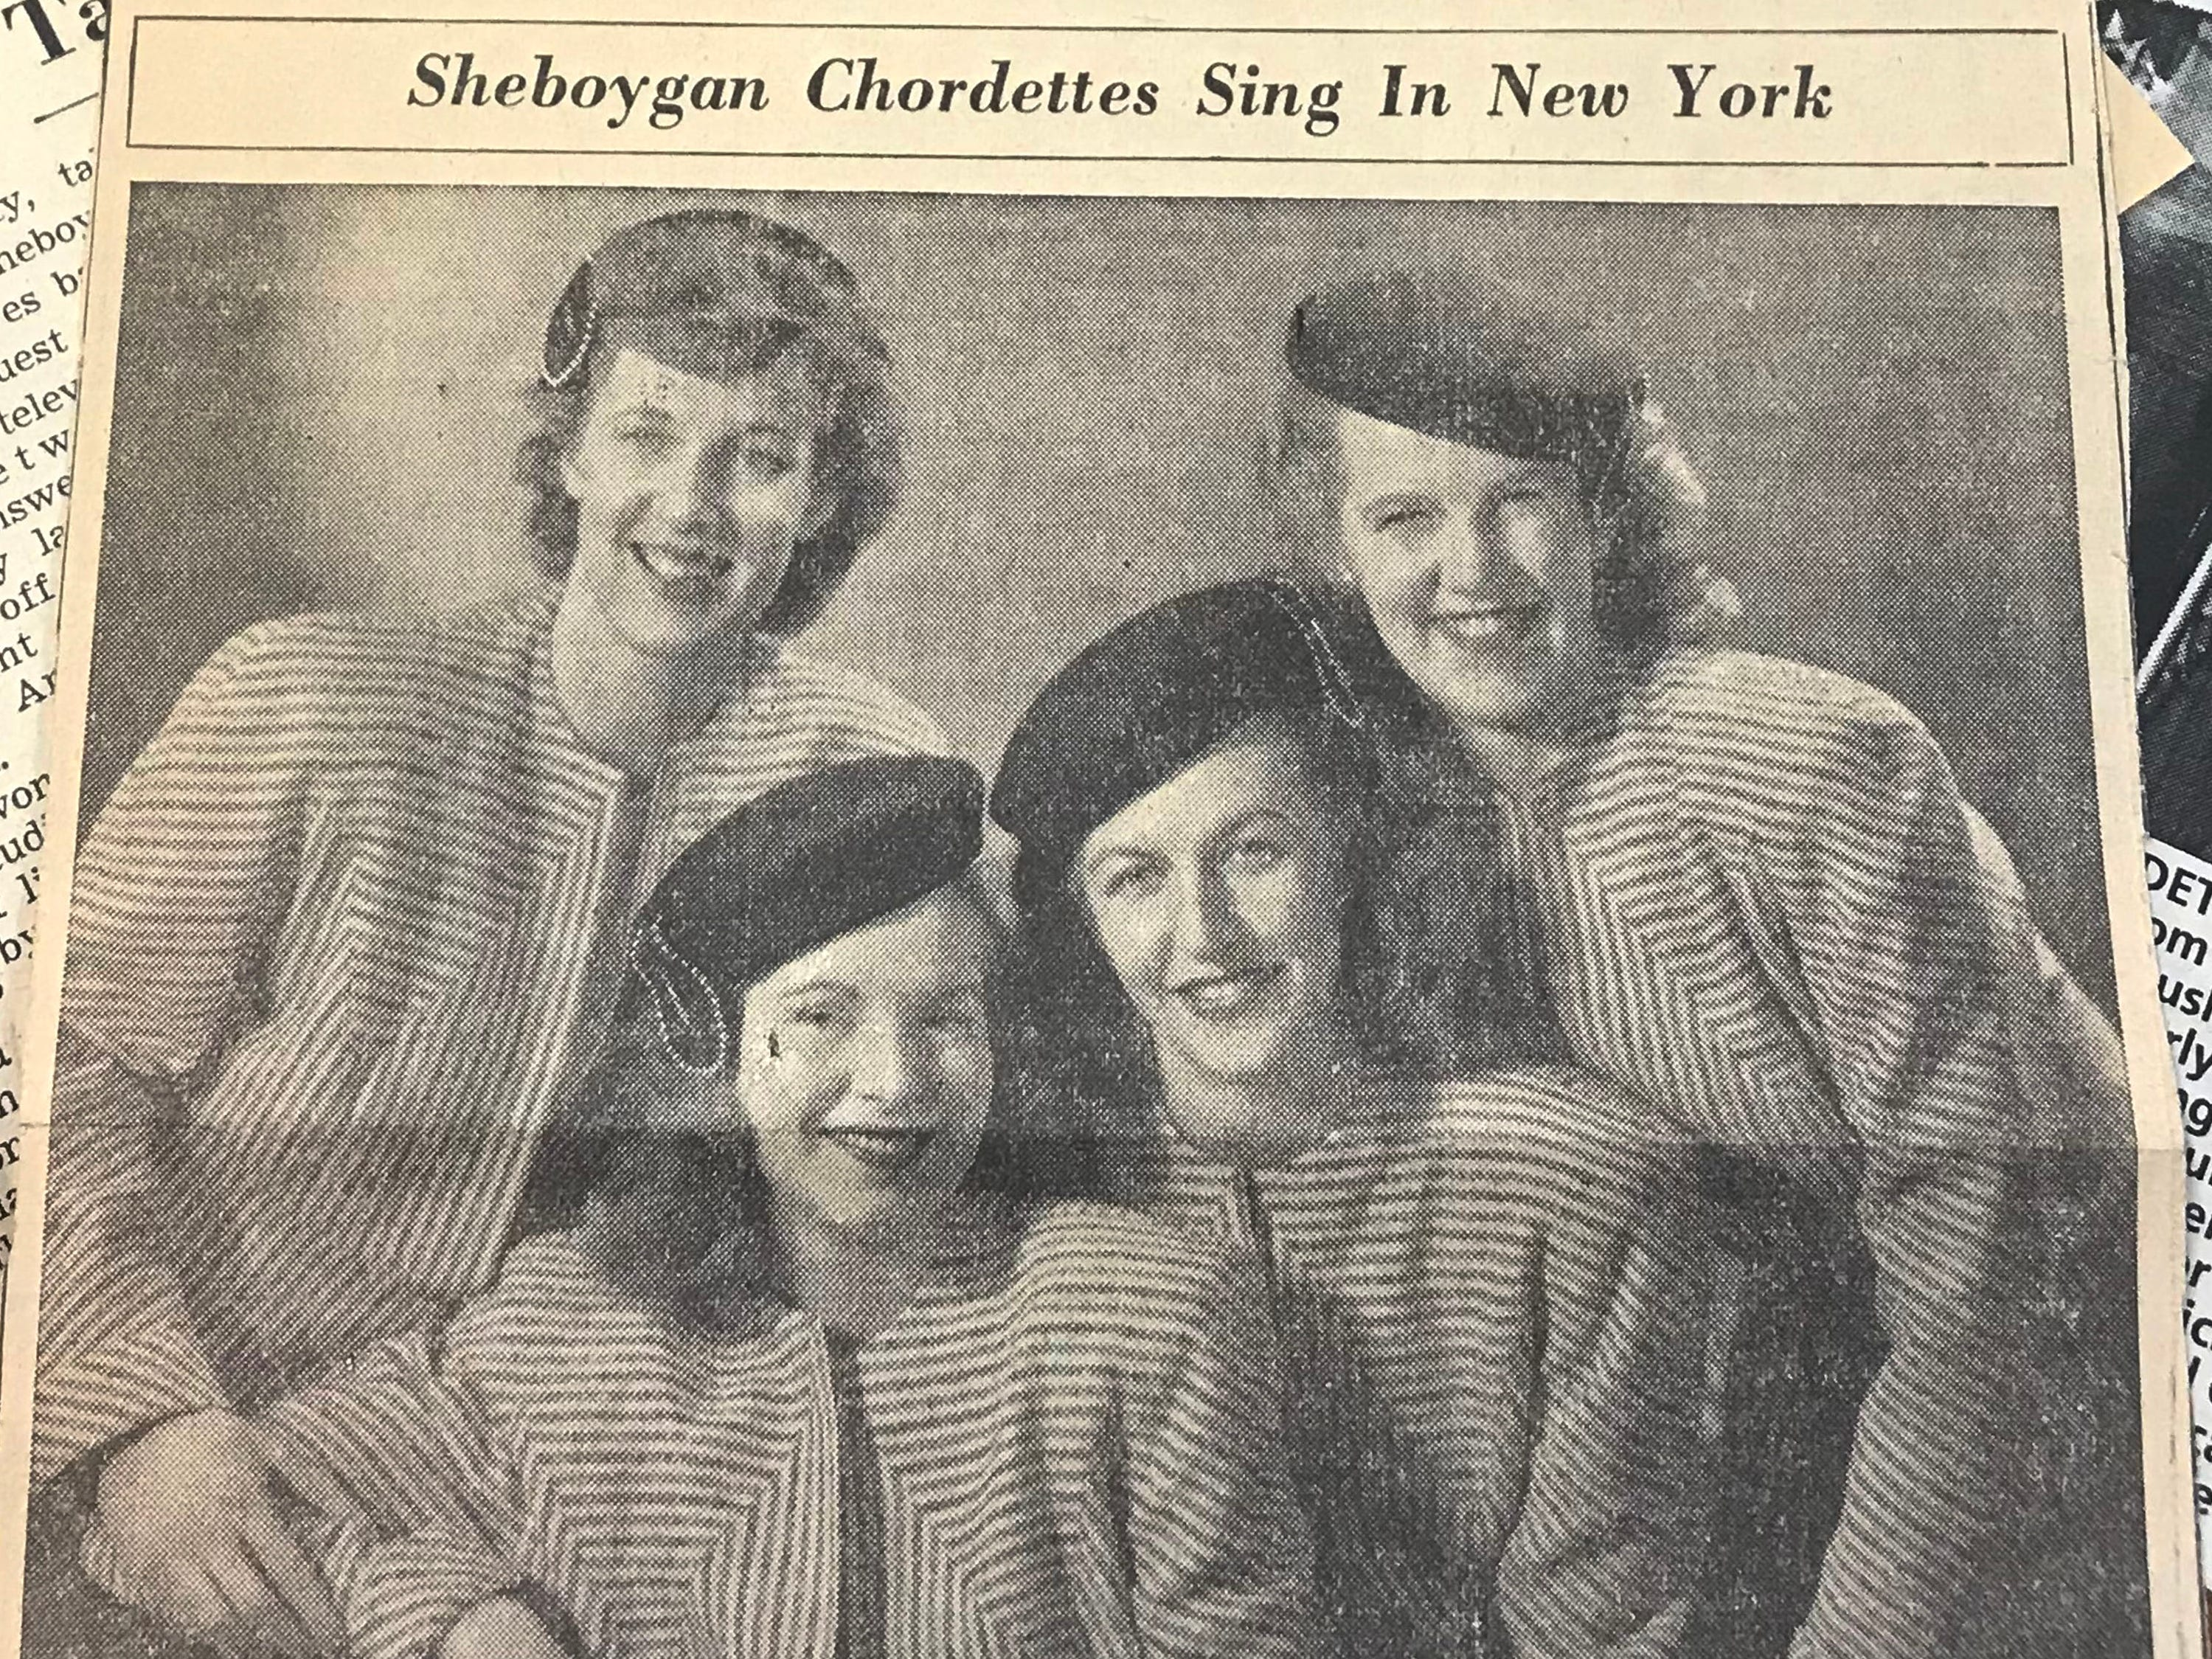 A clipping from the Sheboygan Press back in 1947 of the Chordettes.